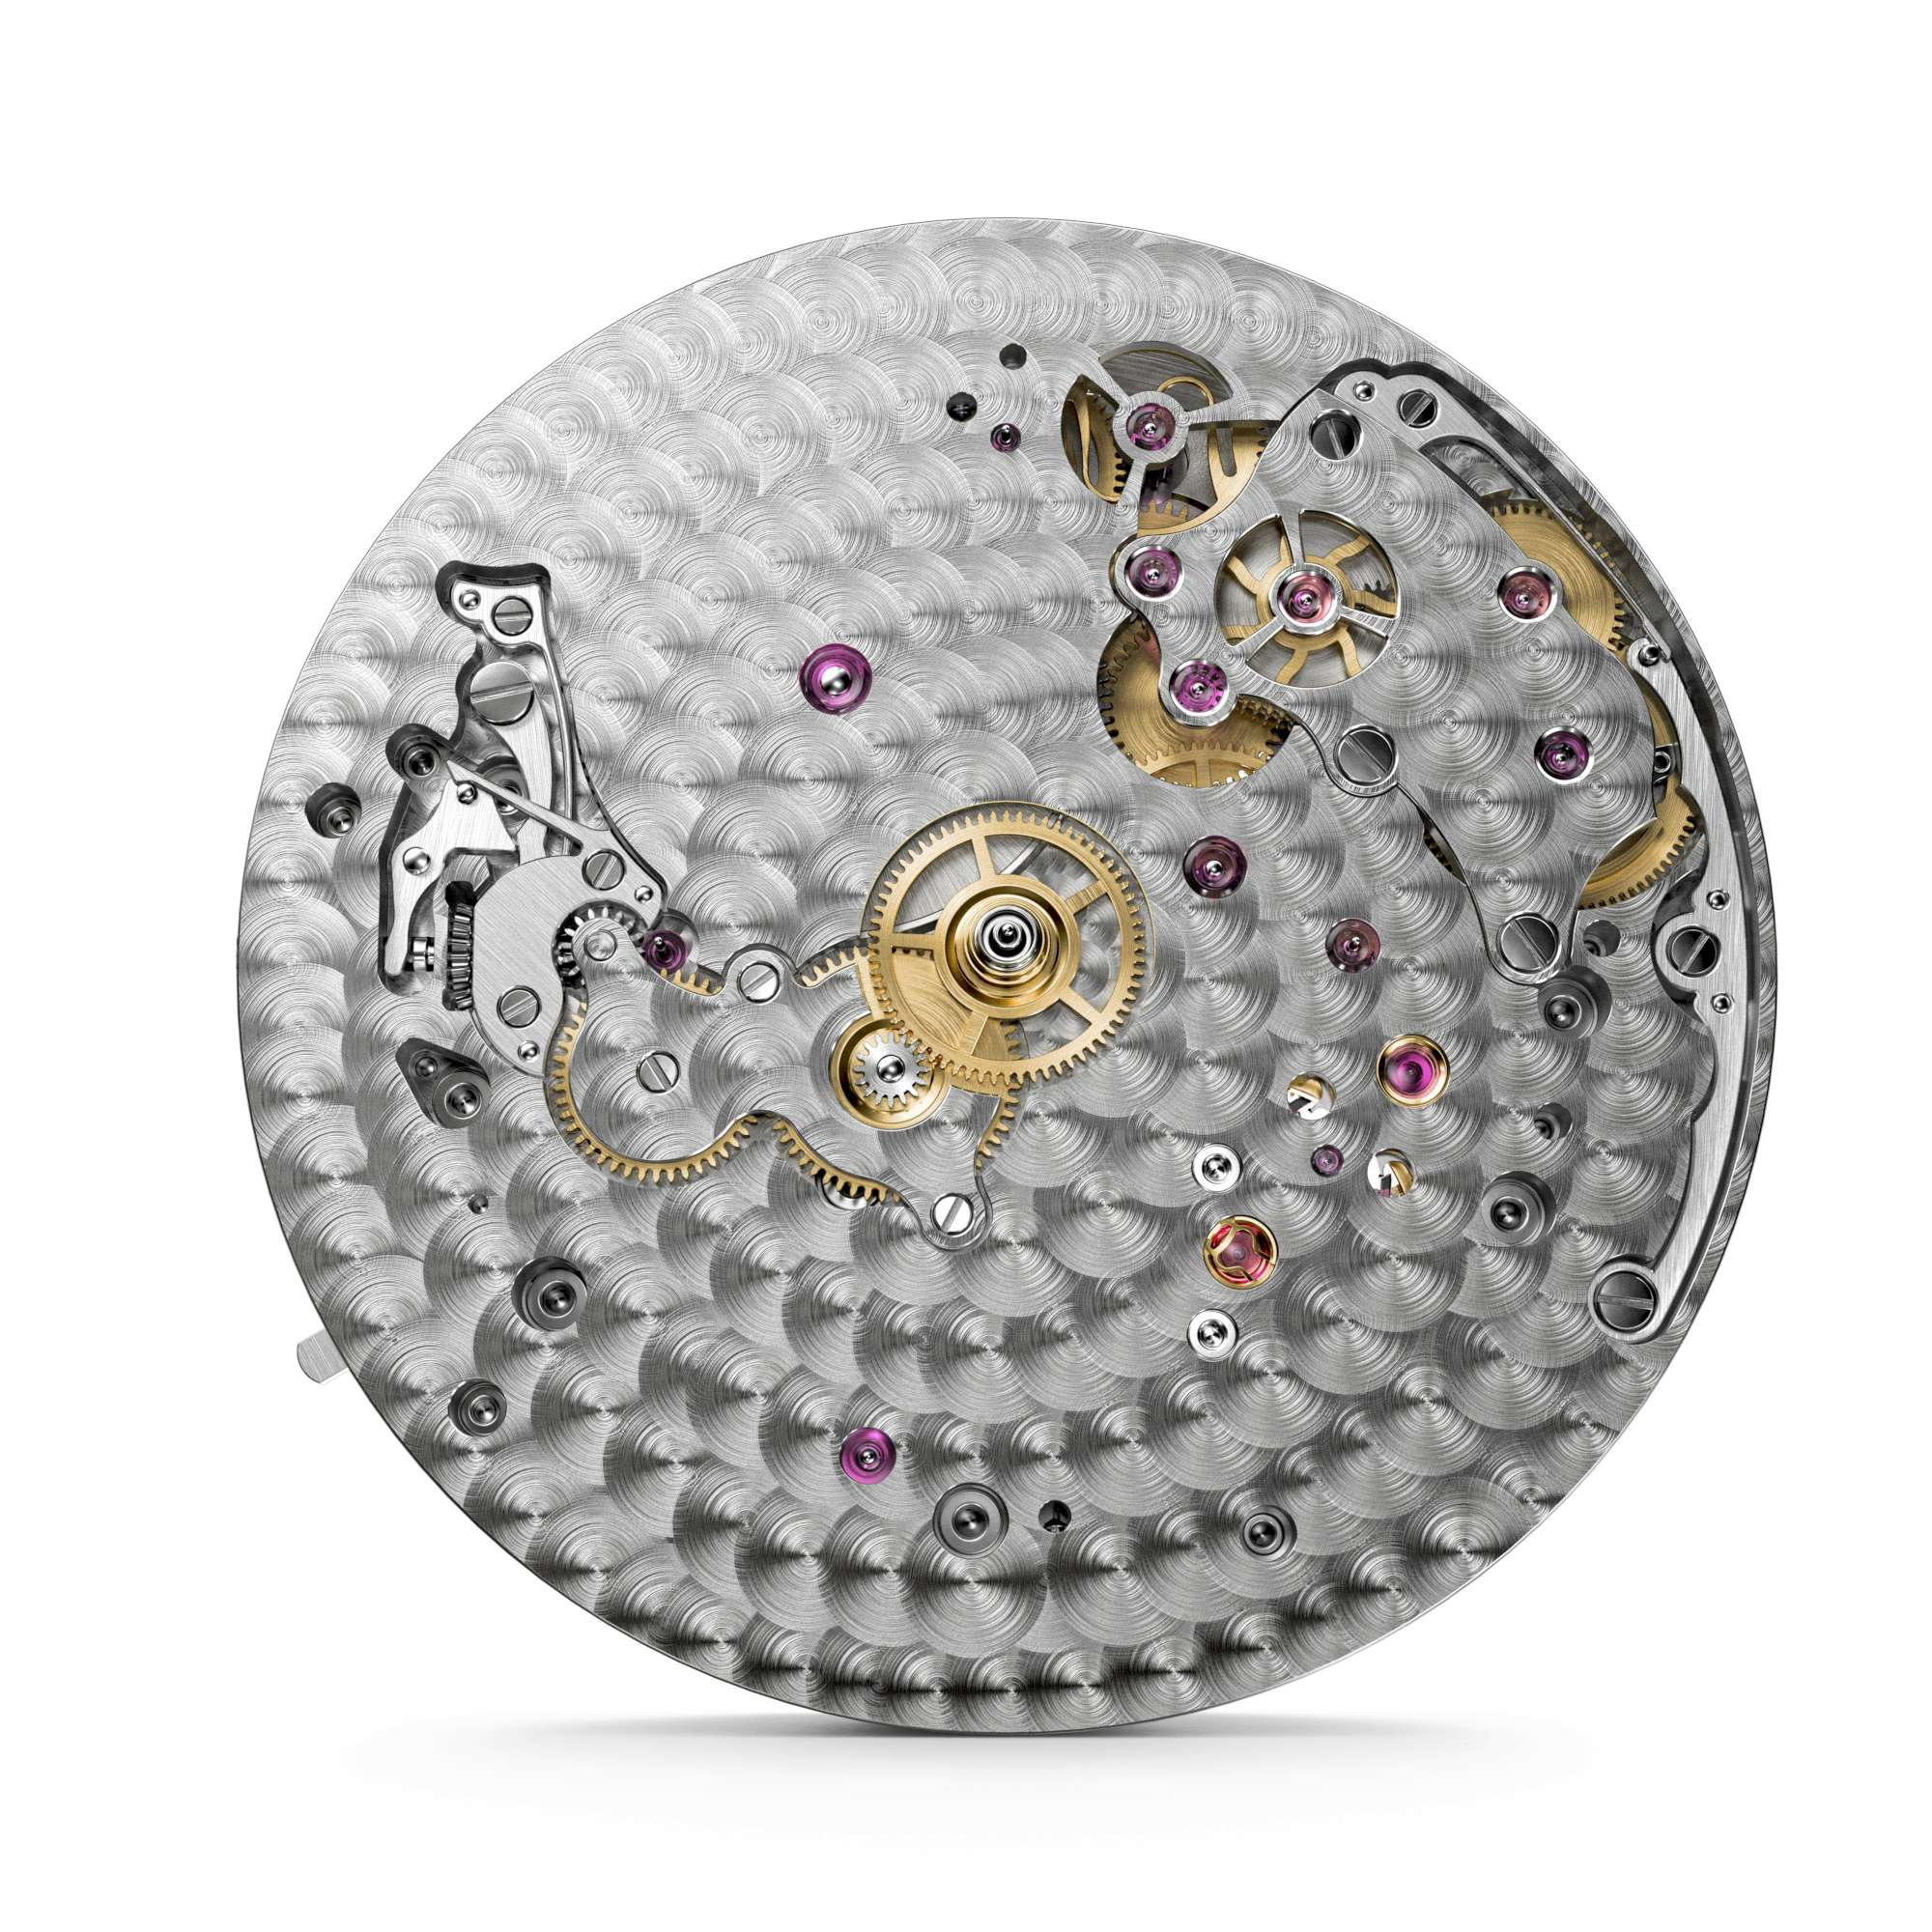 This last image shows another characteristic of all watches by Vacheron Constantin: decoration and finish extend to parts that are not visible, such as the dial side of the movement shown here.